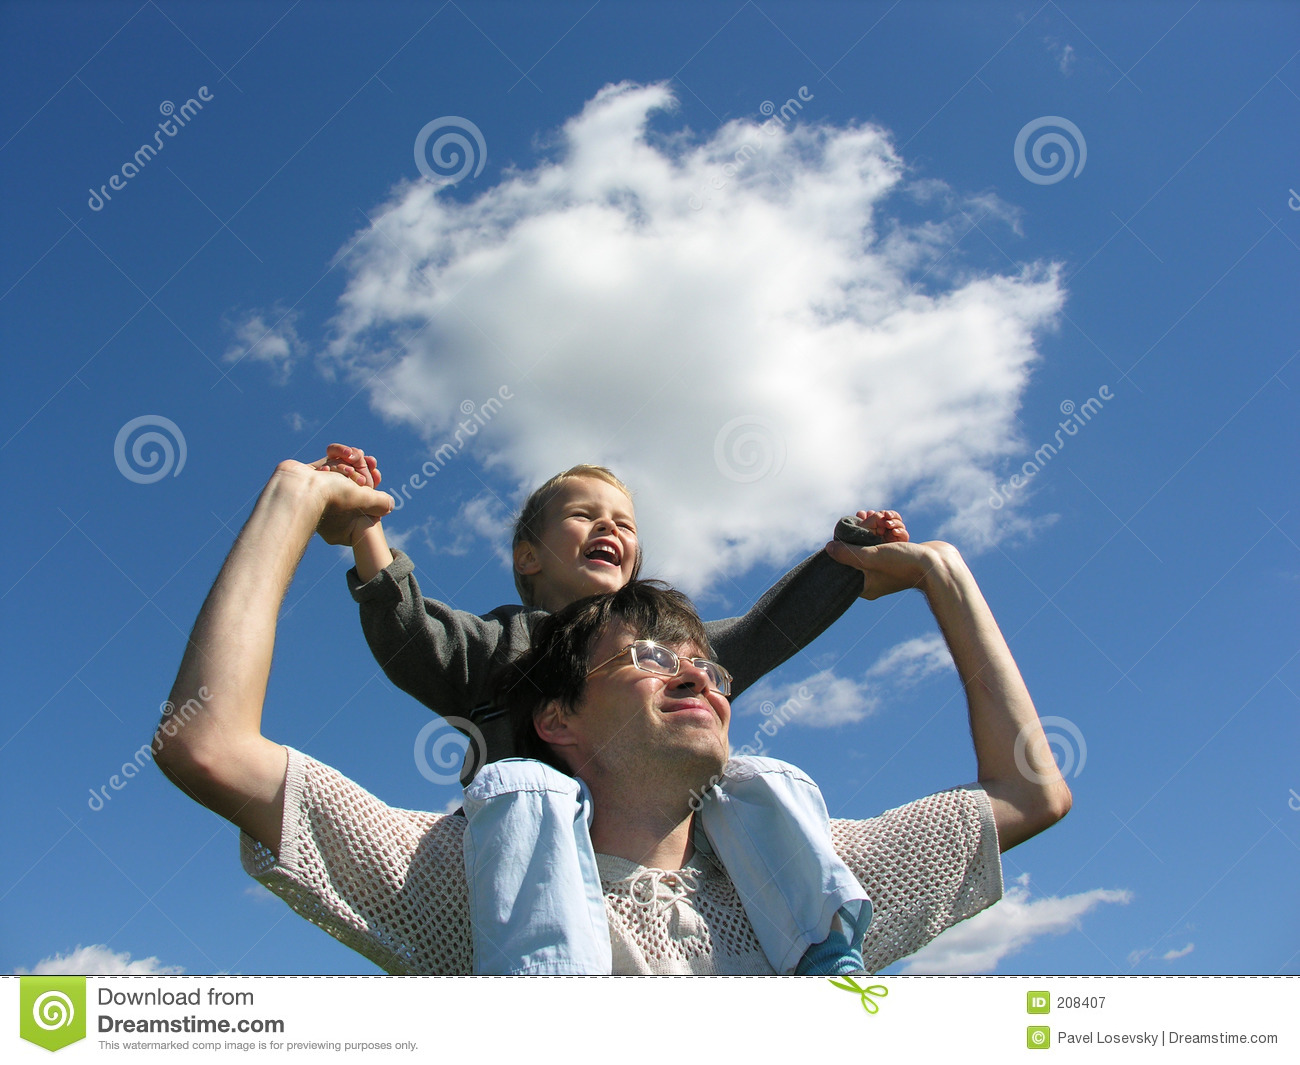 Father with son on shoulders sunny day